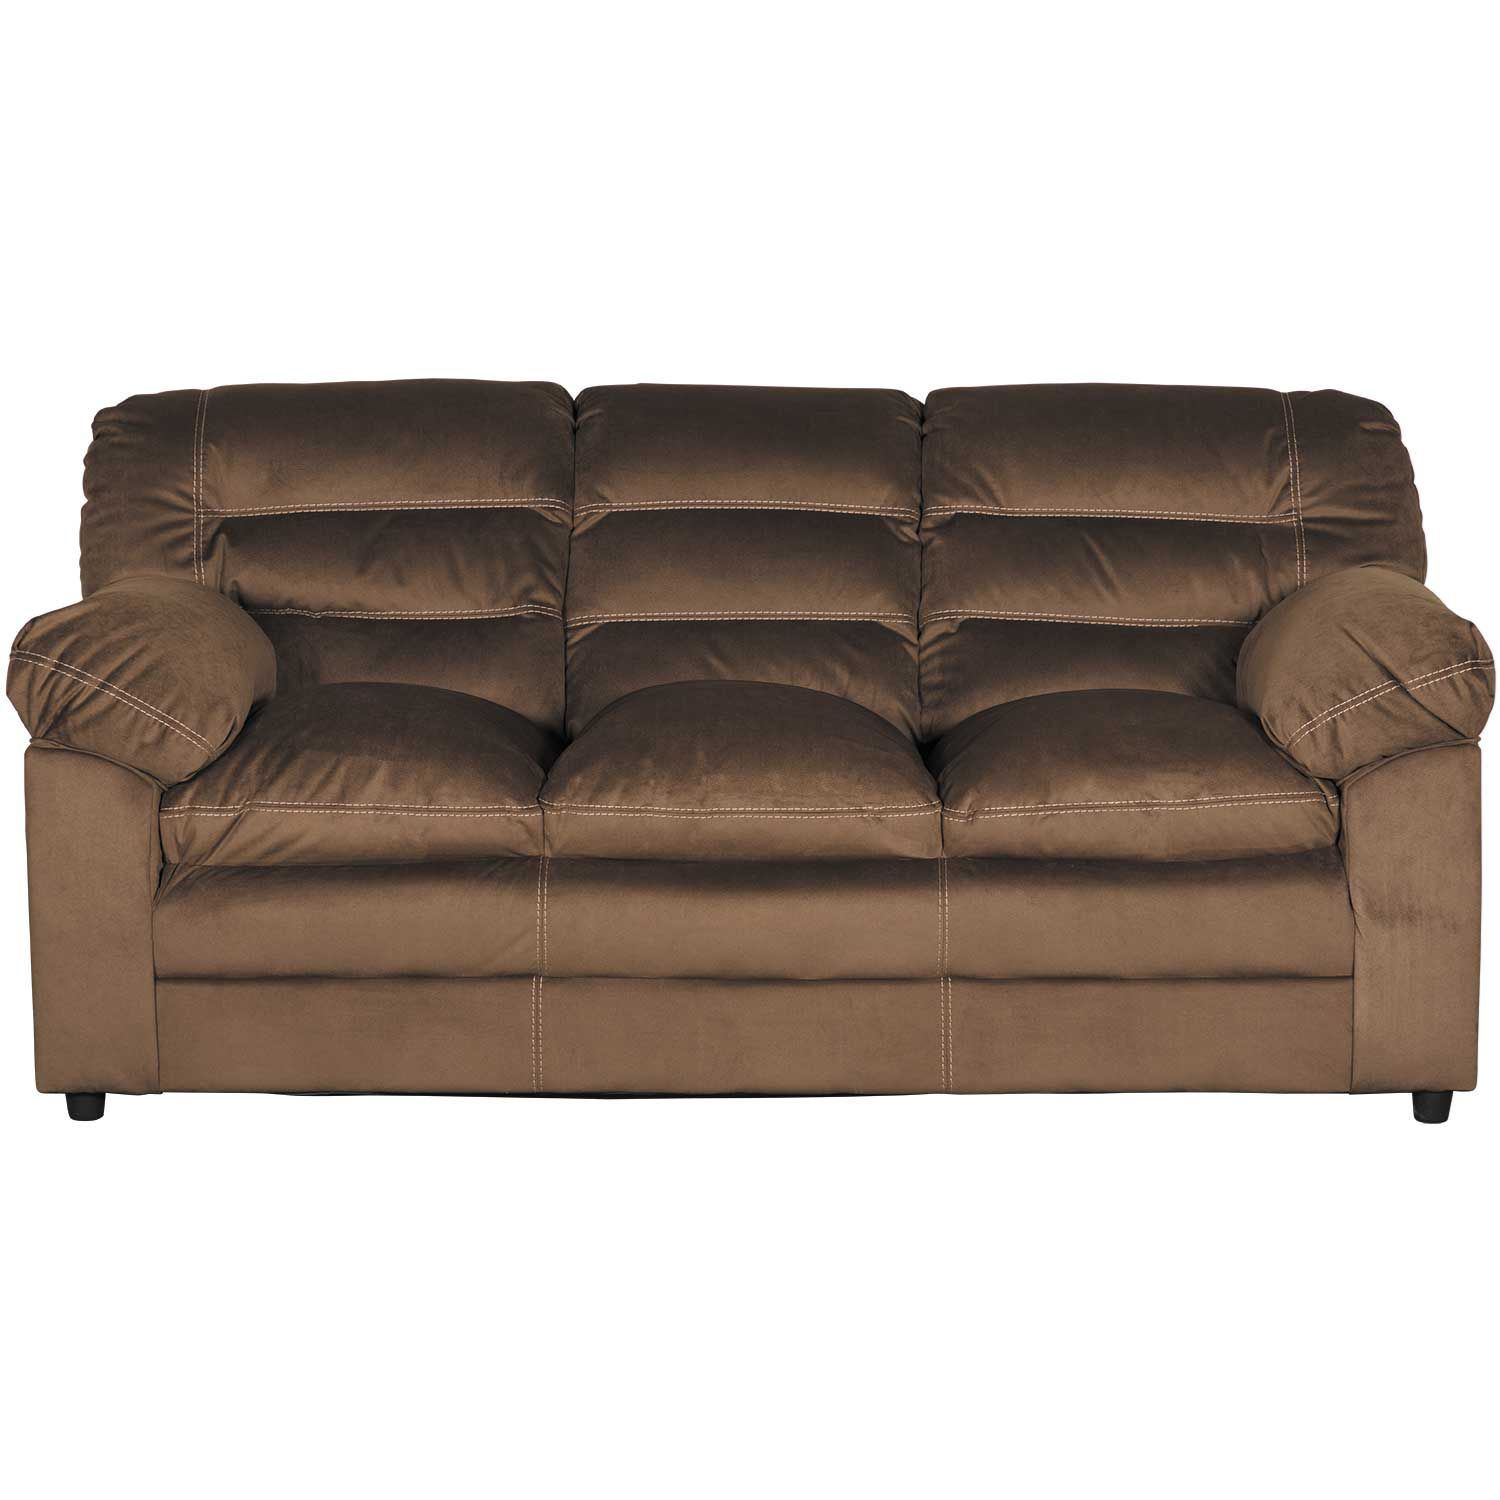 Chocolate Corduroy Sofa Gosnell Chocolate Sofa